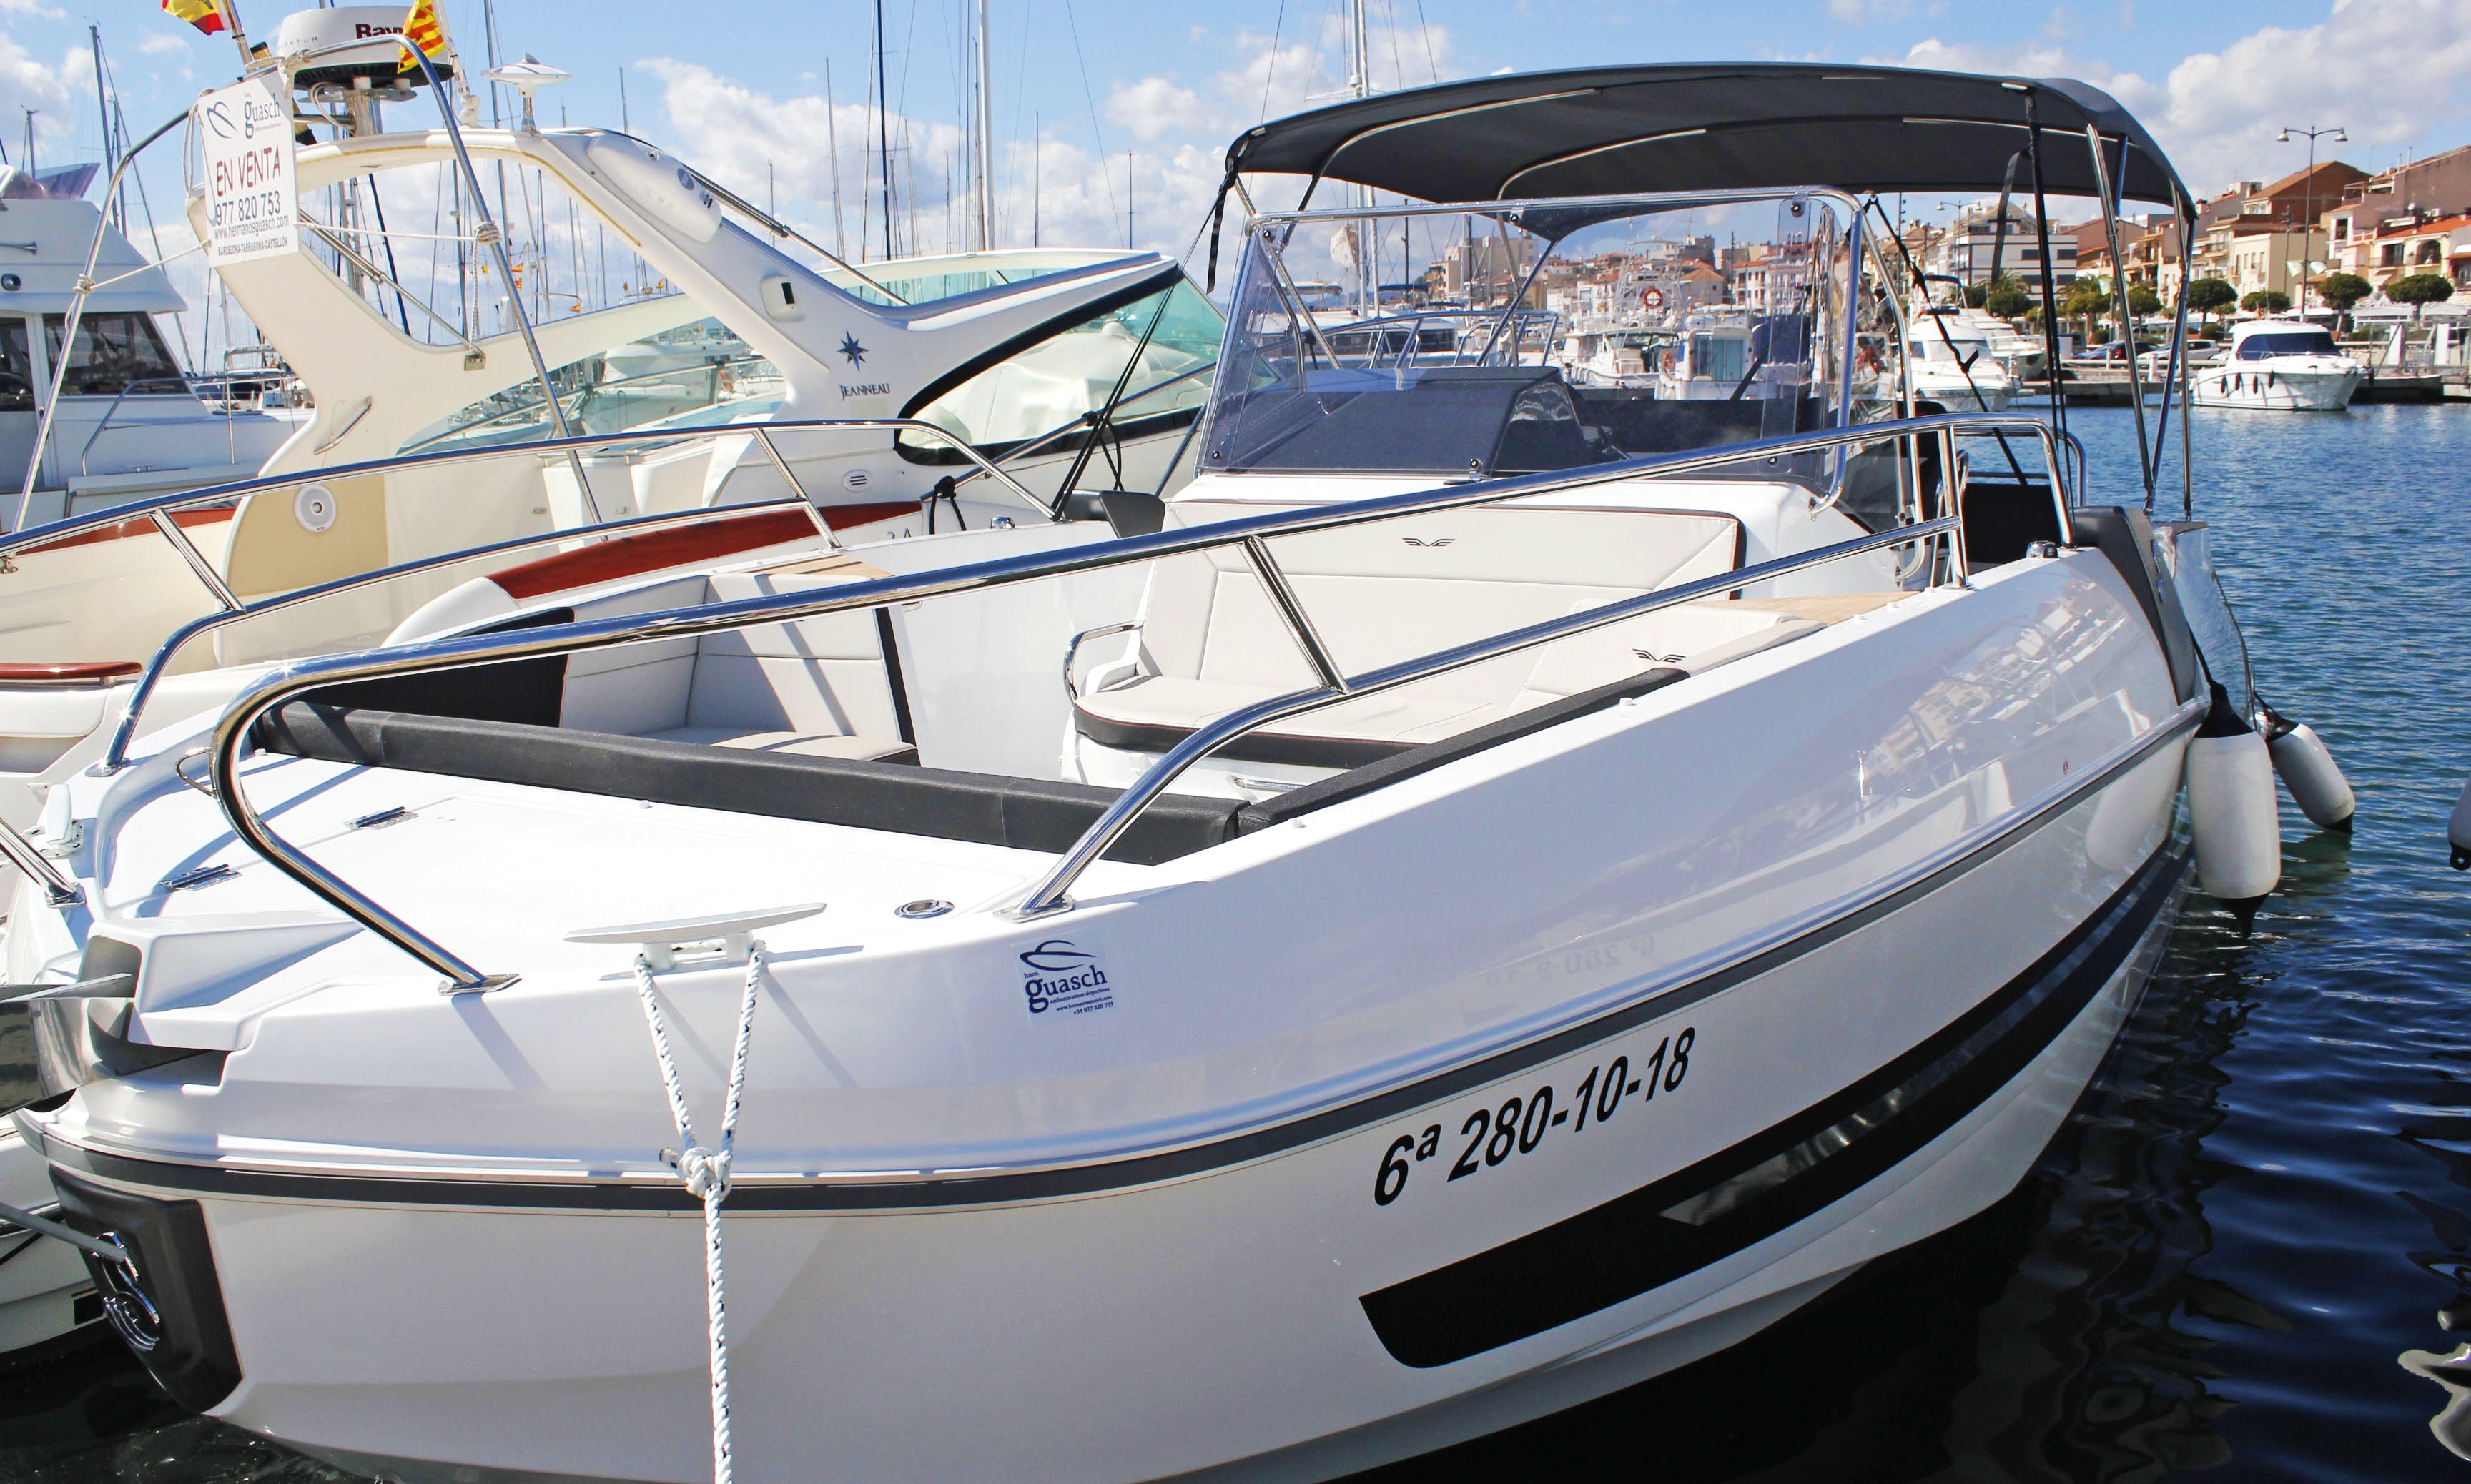 Rent the 2019 model Flyer 8.8 Spacedeck Boat in Cambrils, Catalunya